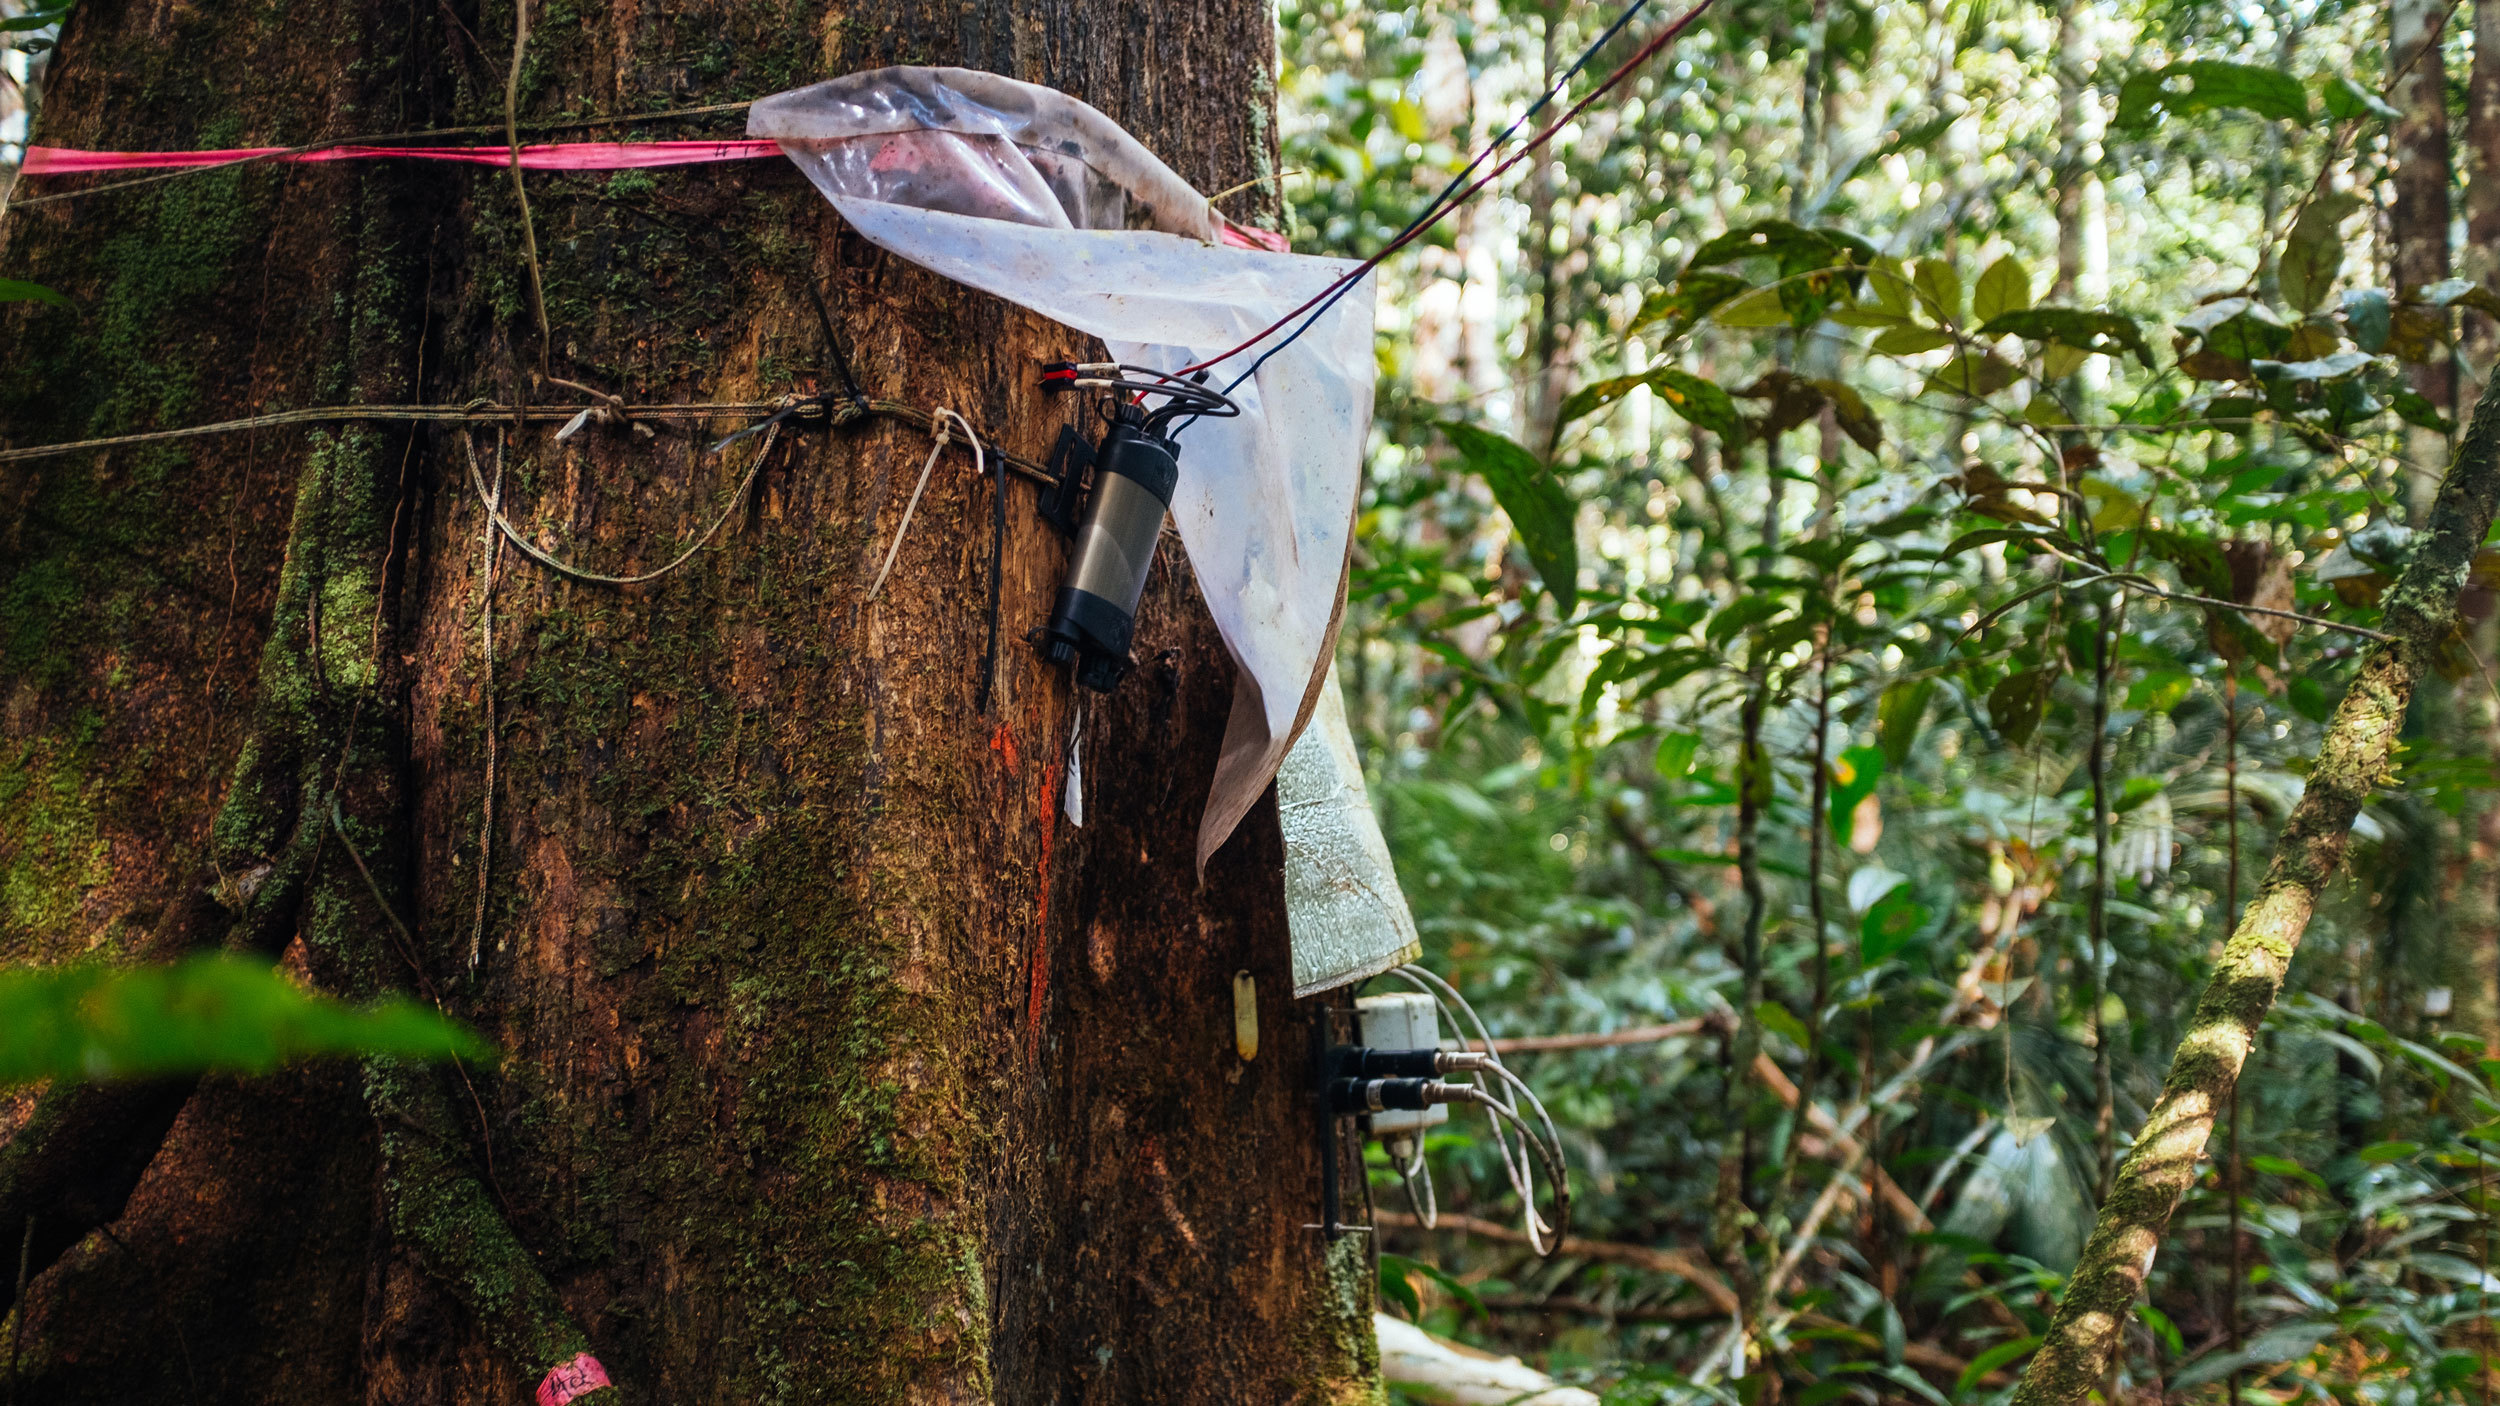 Instruments and wires are strapped to the base of a tree in the jungle.